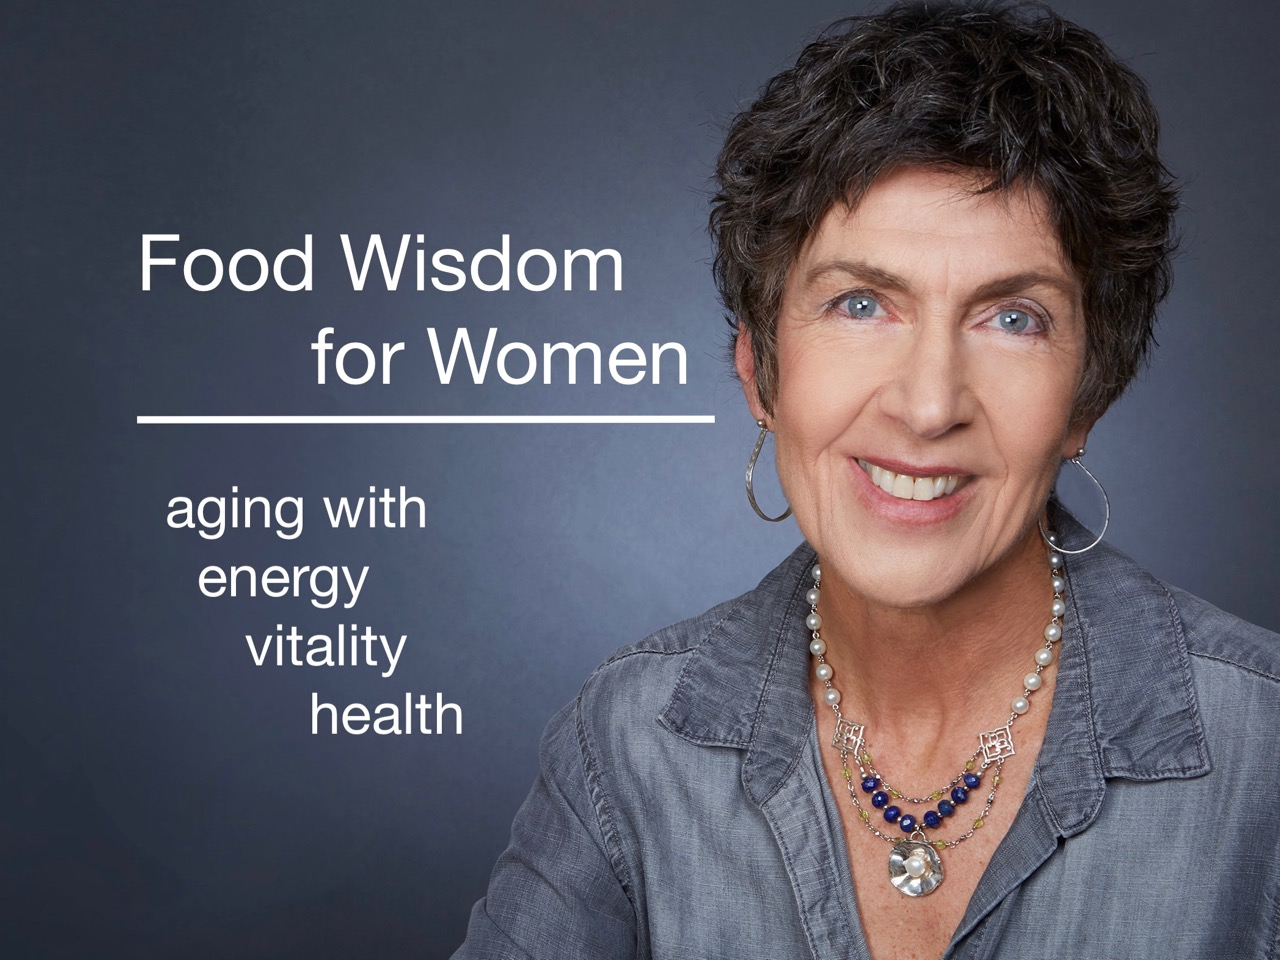 Protein intake tips for older women from the new book